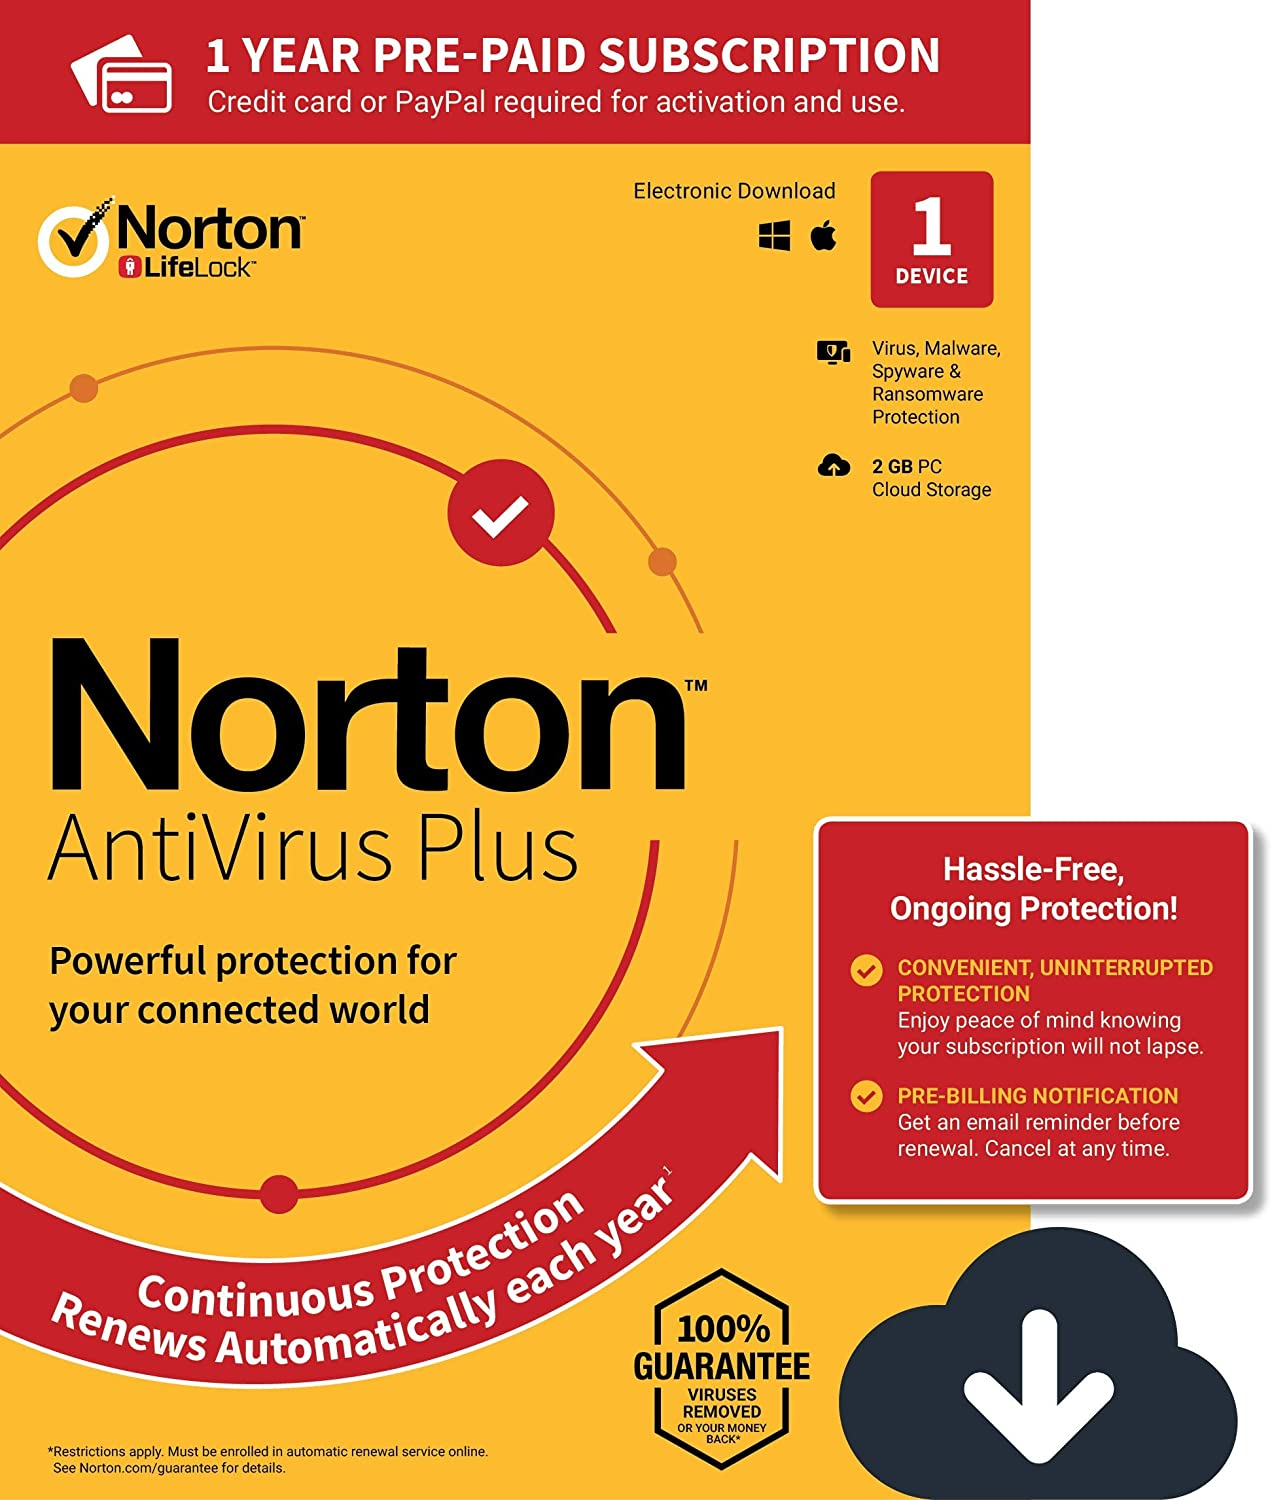 Norton AntiVirus Plus – Antivirus software for 1 Device with Auto-Renewal - Includes Password Manager, Smart Firewall and PC Cloud Backup - 2020 Ready [Download] 81PgGQEpokL